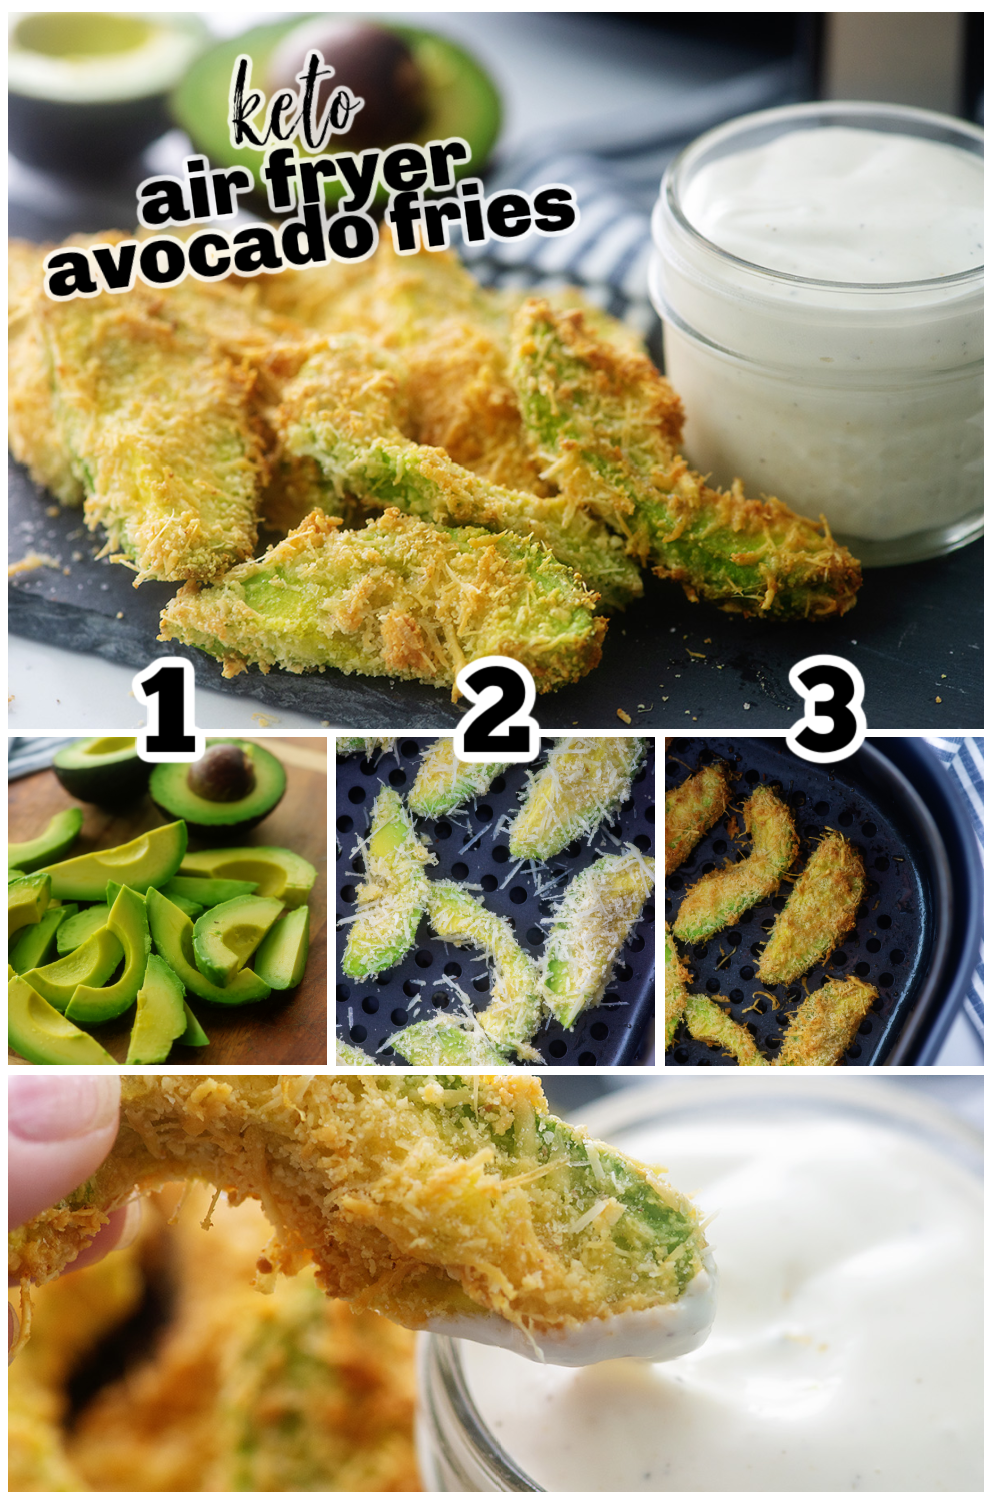 These avocado fries are simple to make in the air fryer! #lowcarb #snacks #airfried